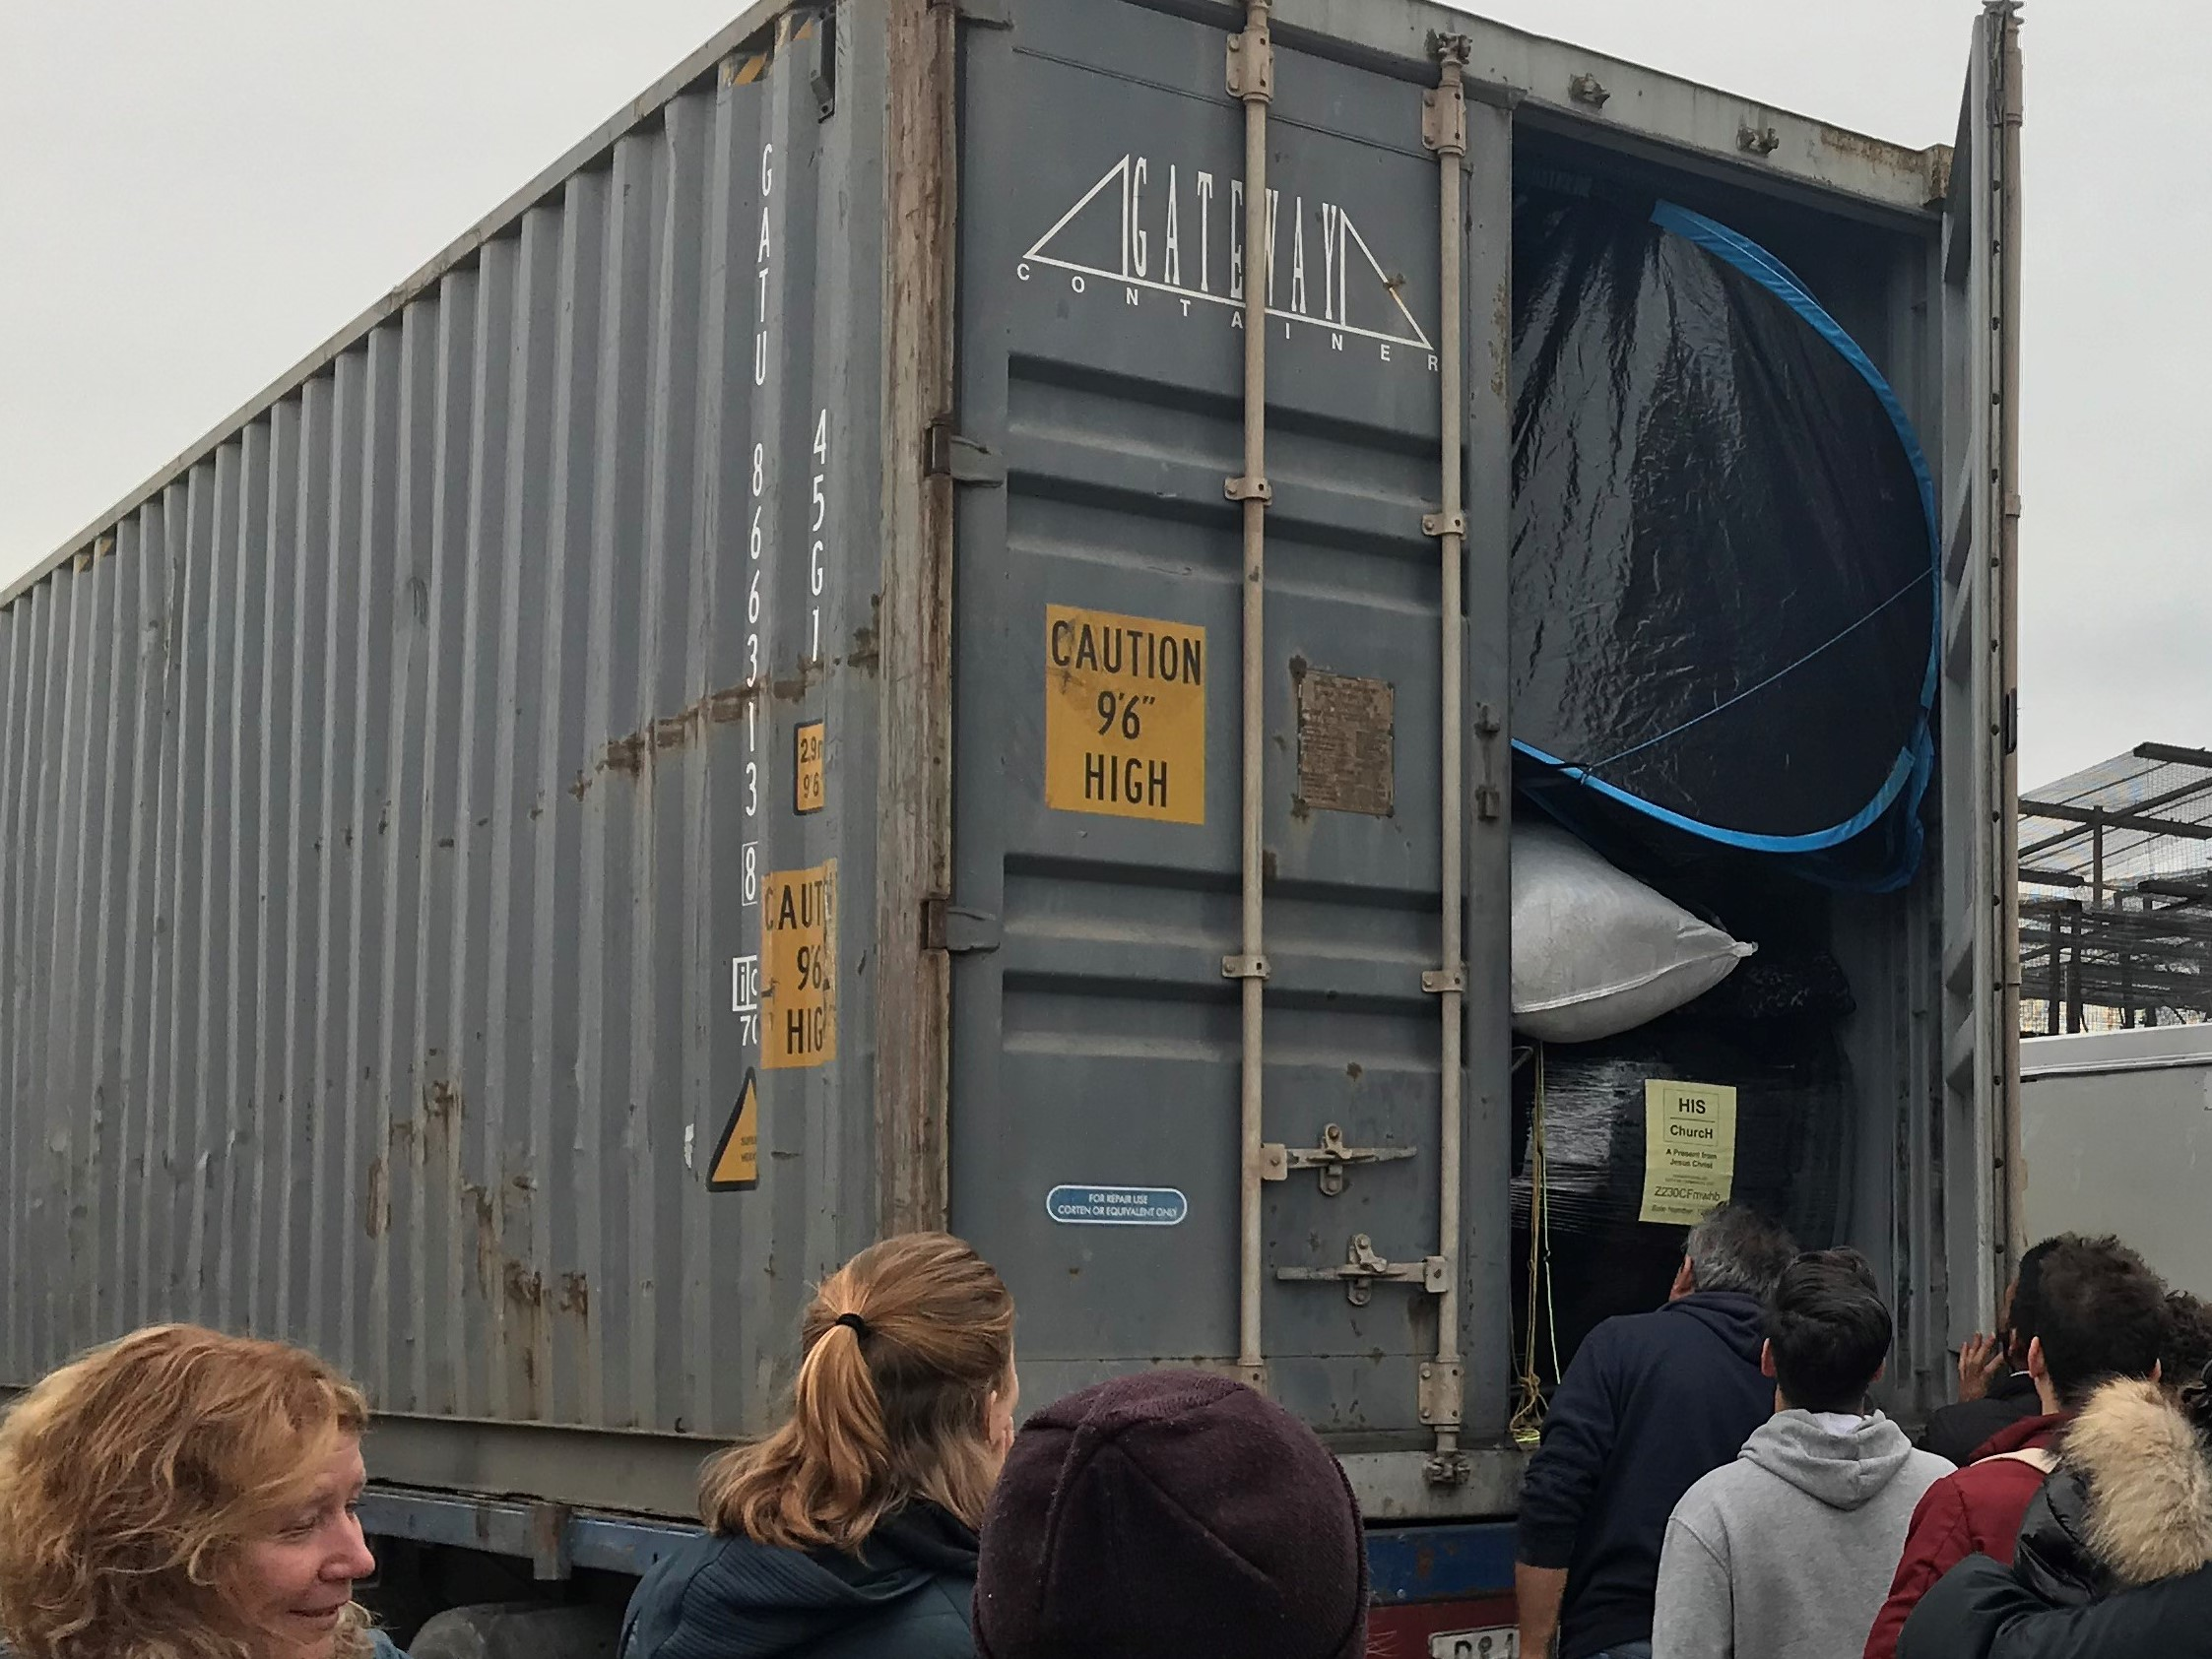 vial camp, Chios, Greece - Refugee Biryani and Bananas are sending a container of aid to Chios and Samos full of new socks, boxers, jogging bottoms, hoodies and t-shirts to provide much-needed clothes to over 3000 refugees, thanks to fundraising in partnership with Donate4Refugees.